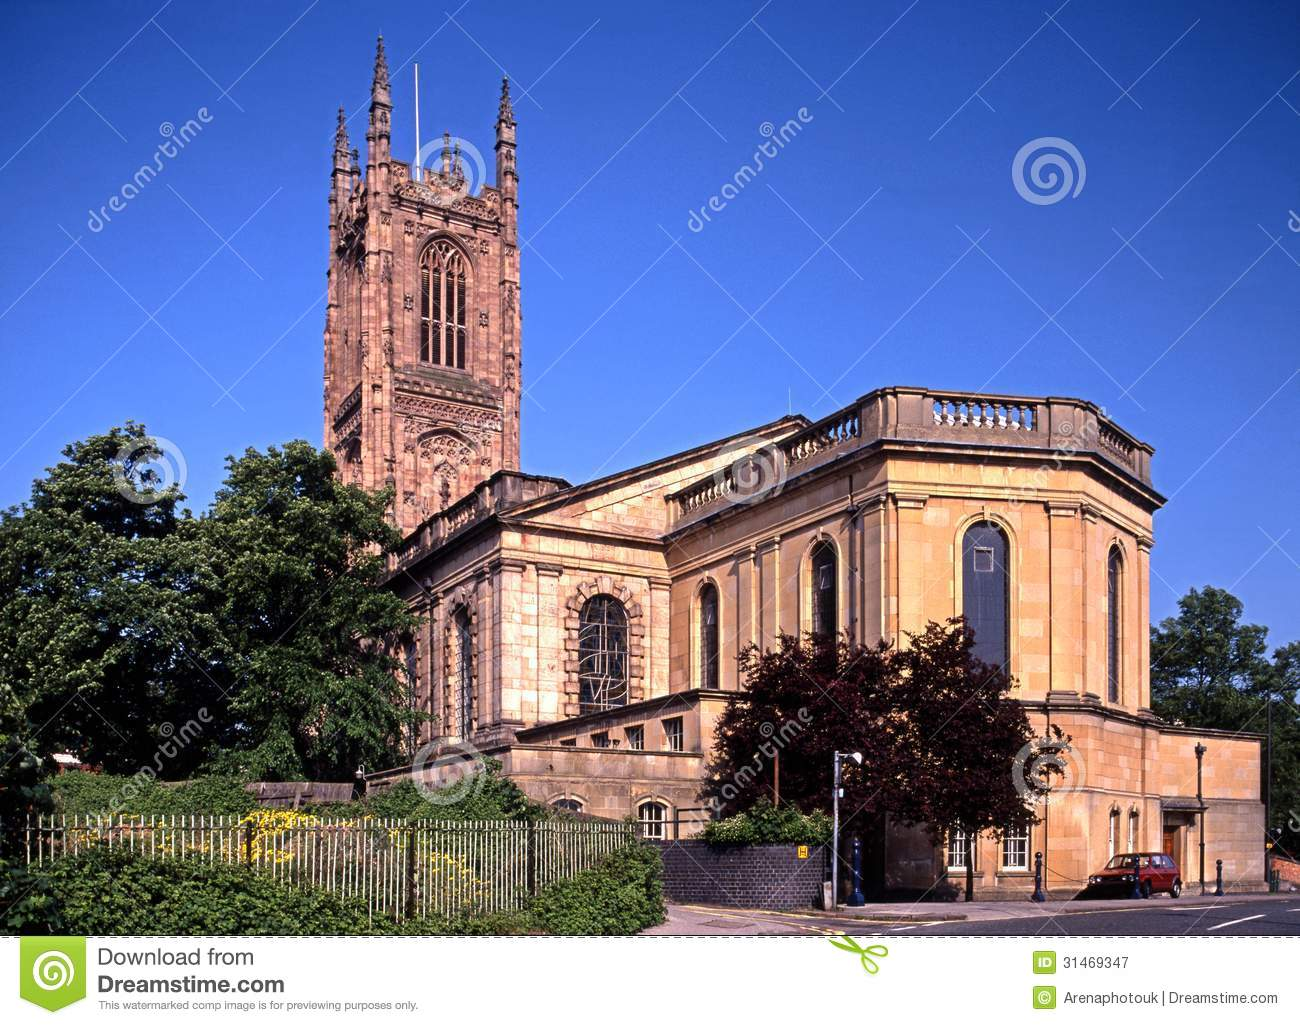 All helgondomkyrka, derby, England.